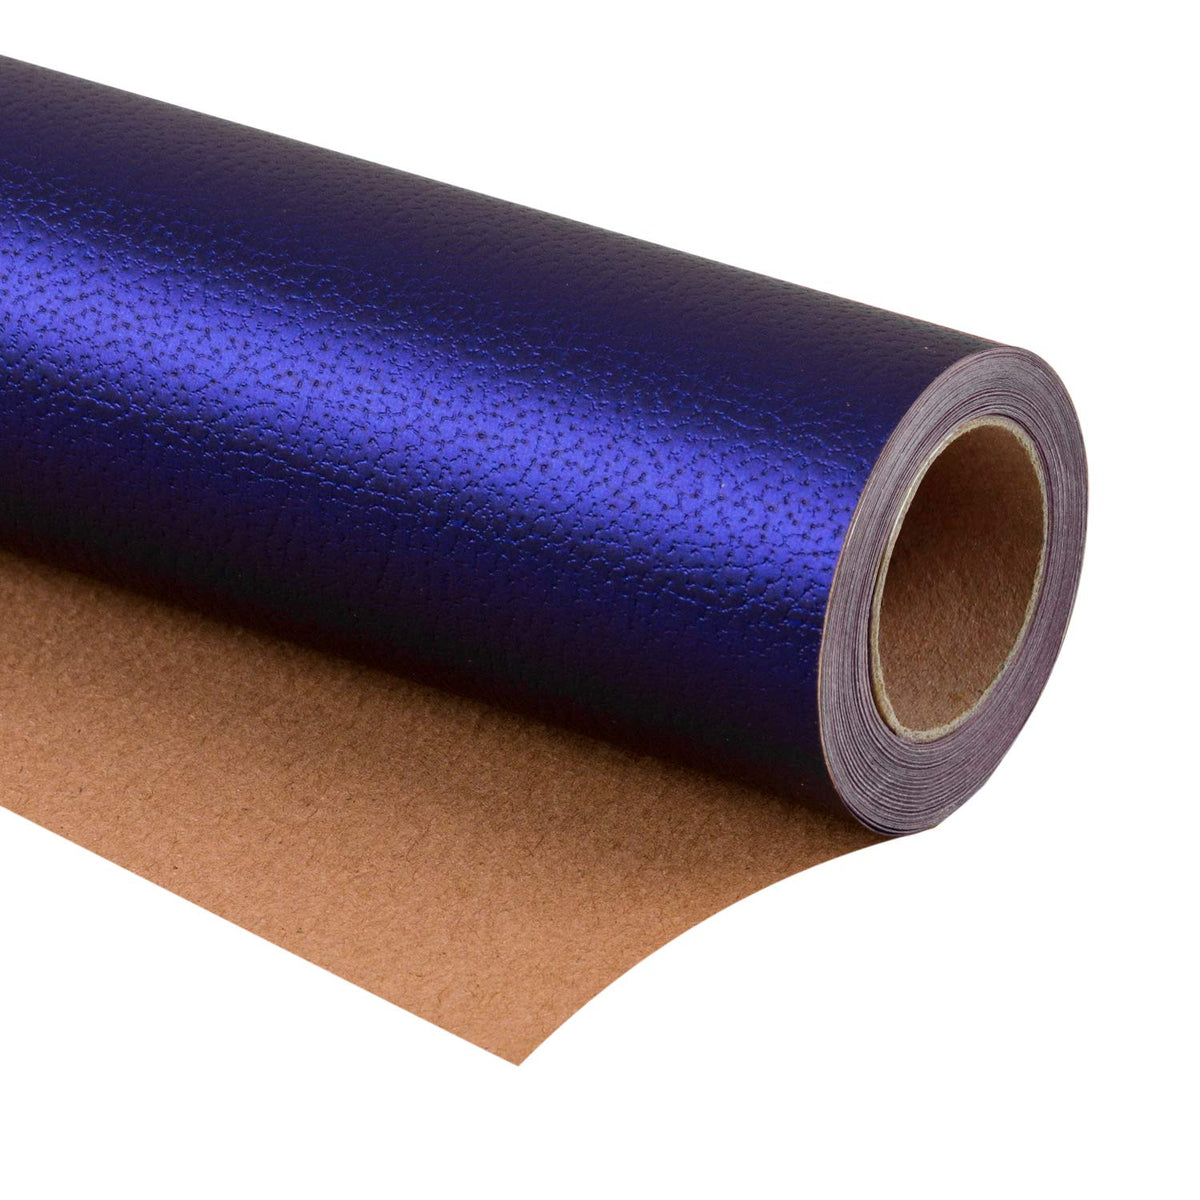 Wrapaholic-Matte-Navy-Gift-Wrapping-Paper- Navy-Blue-Lychee-Leather-Grain-1